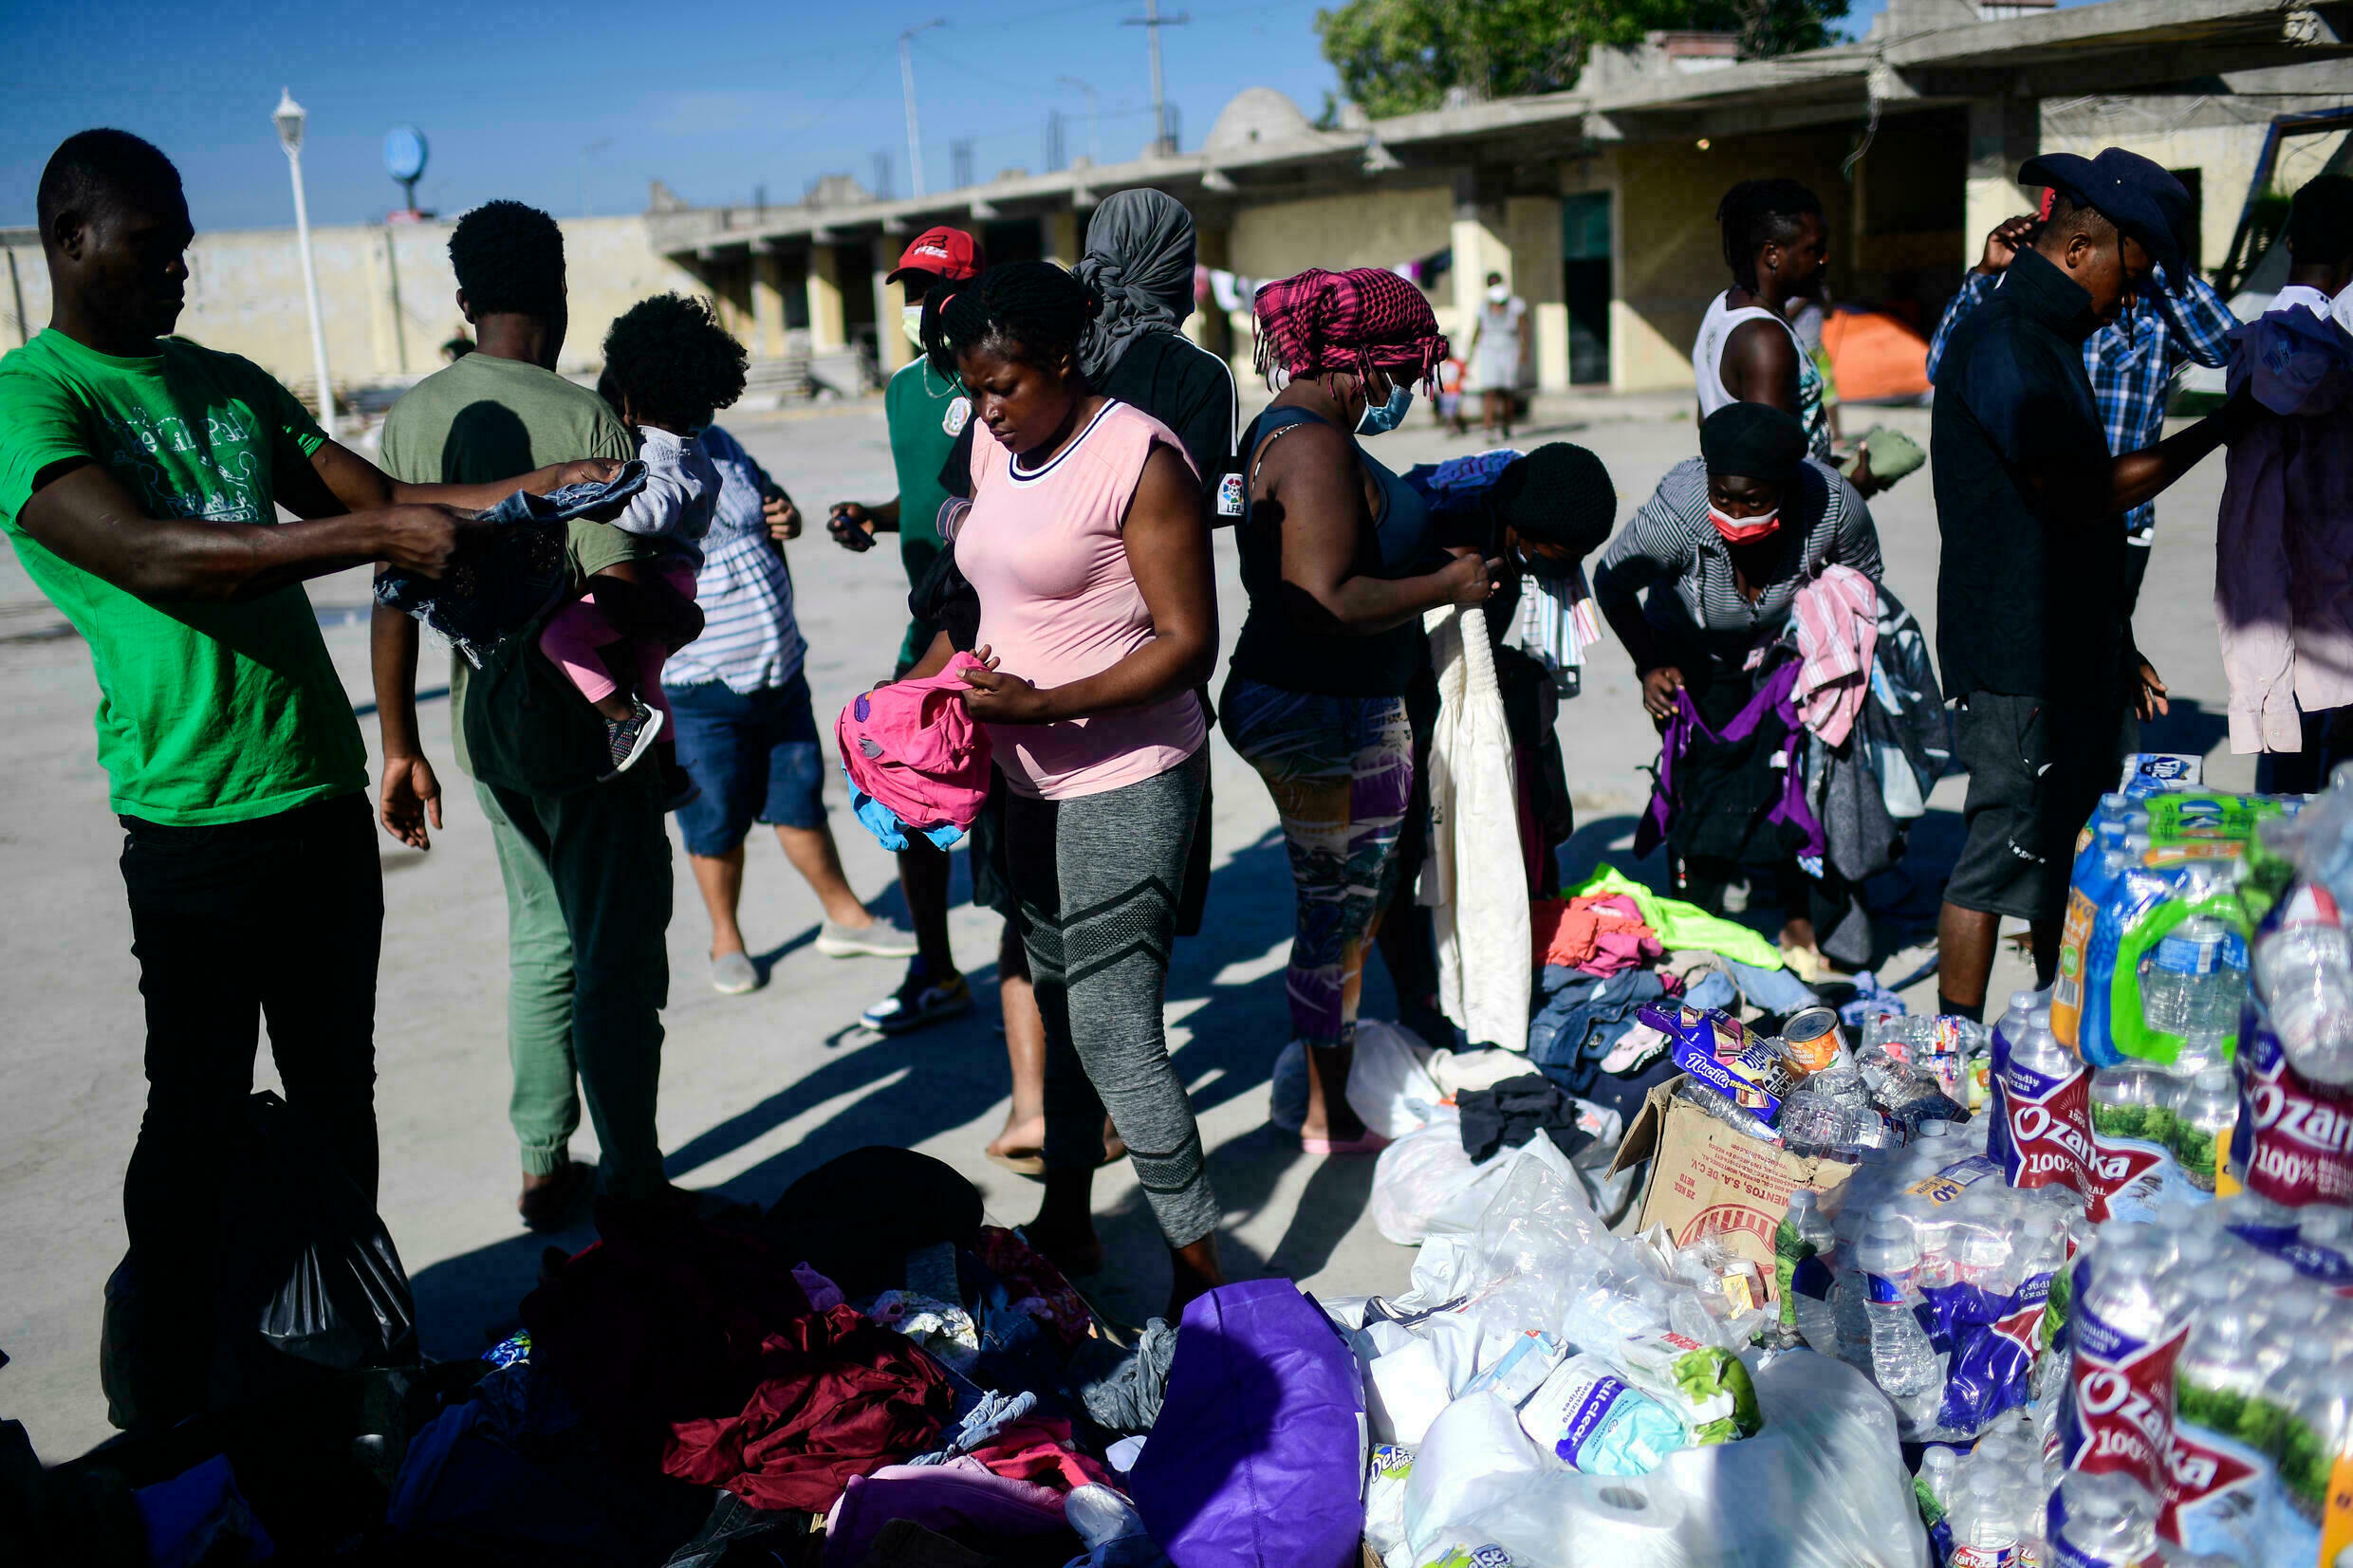 Haitians gather clothes and food at a shelter in Ciudad Acuña, Mexico, on September 25, 2021